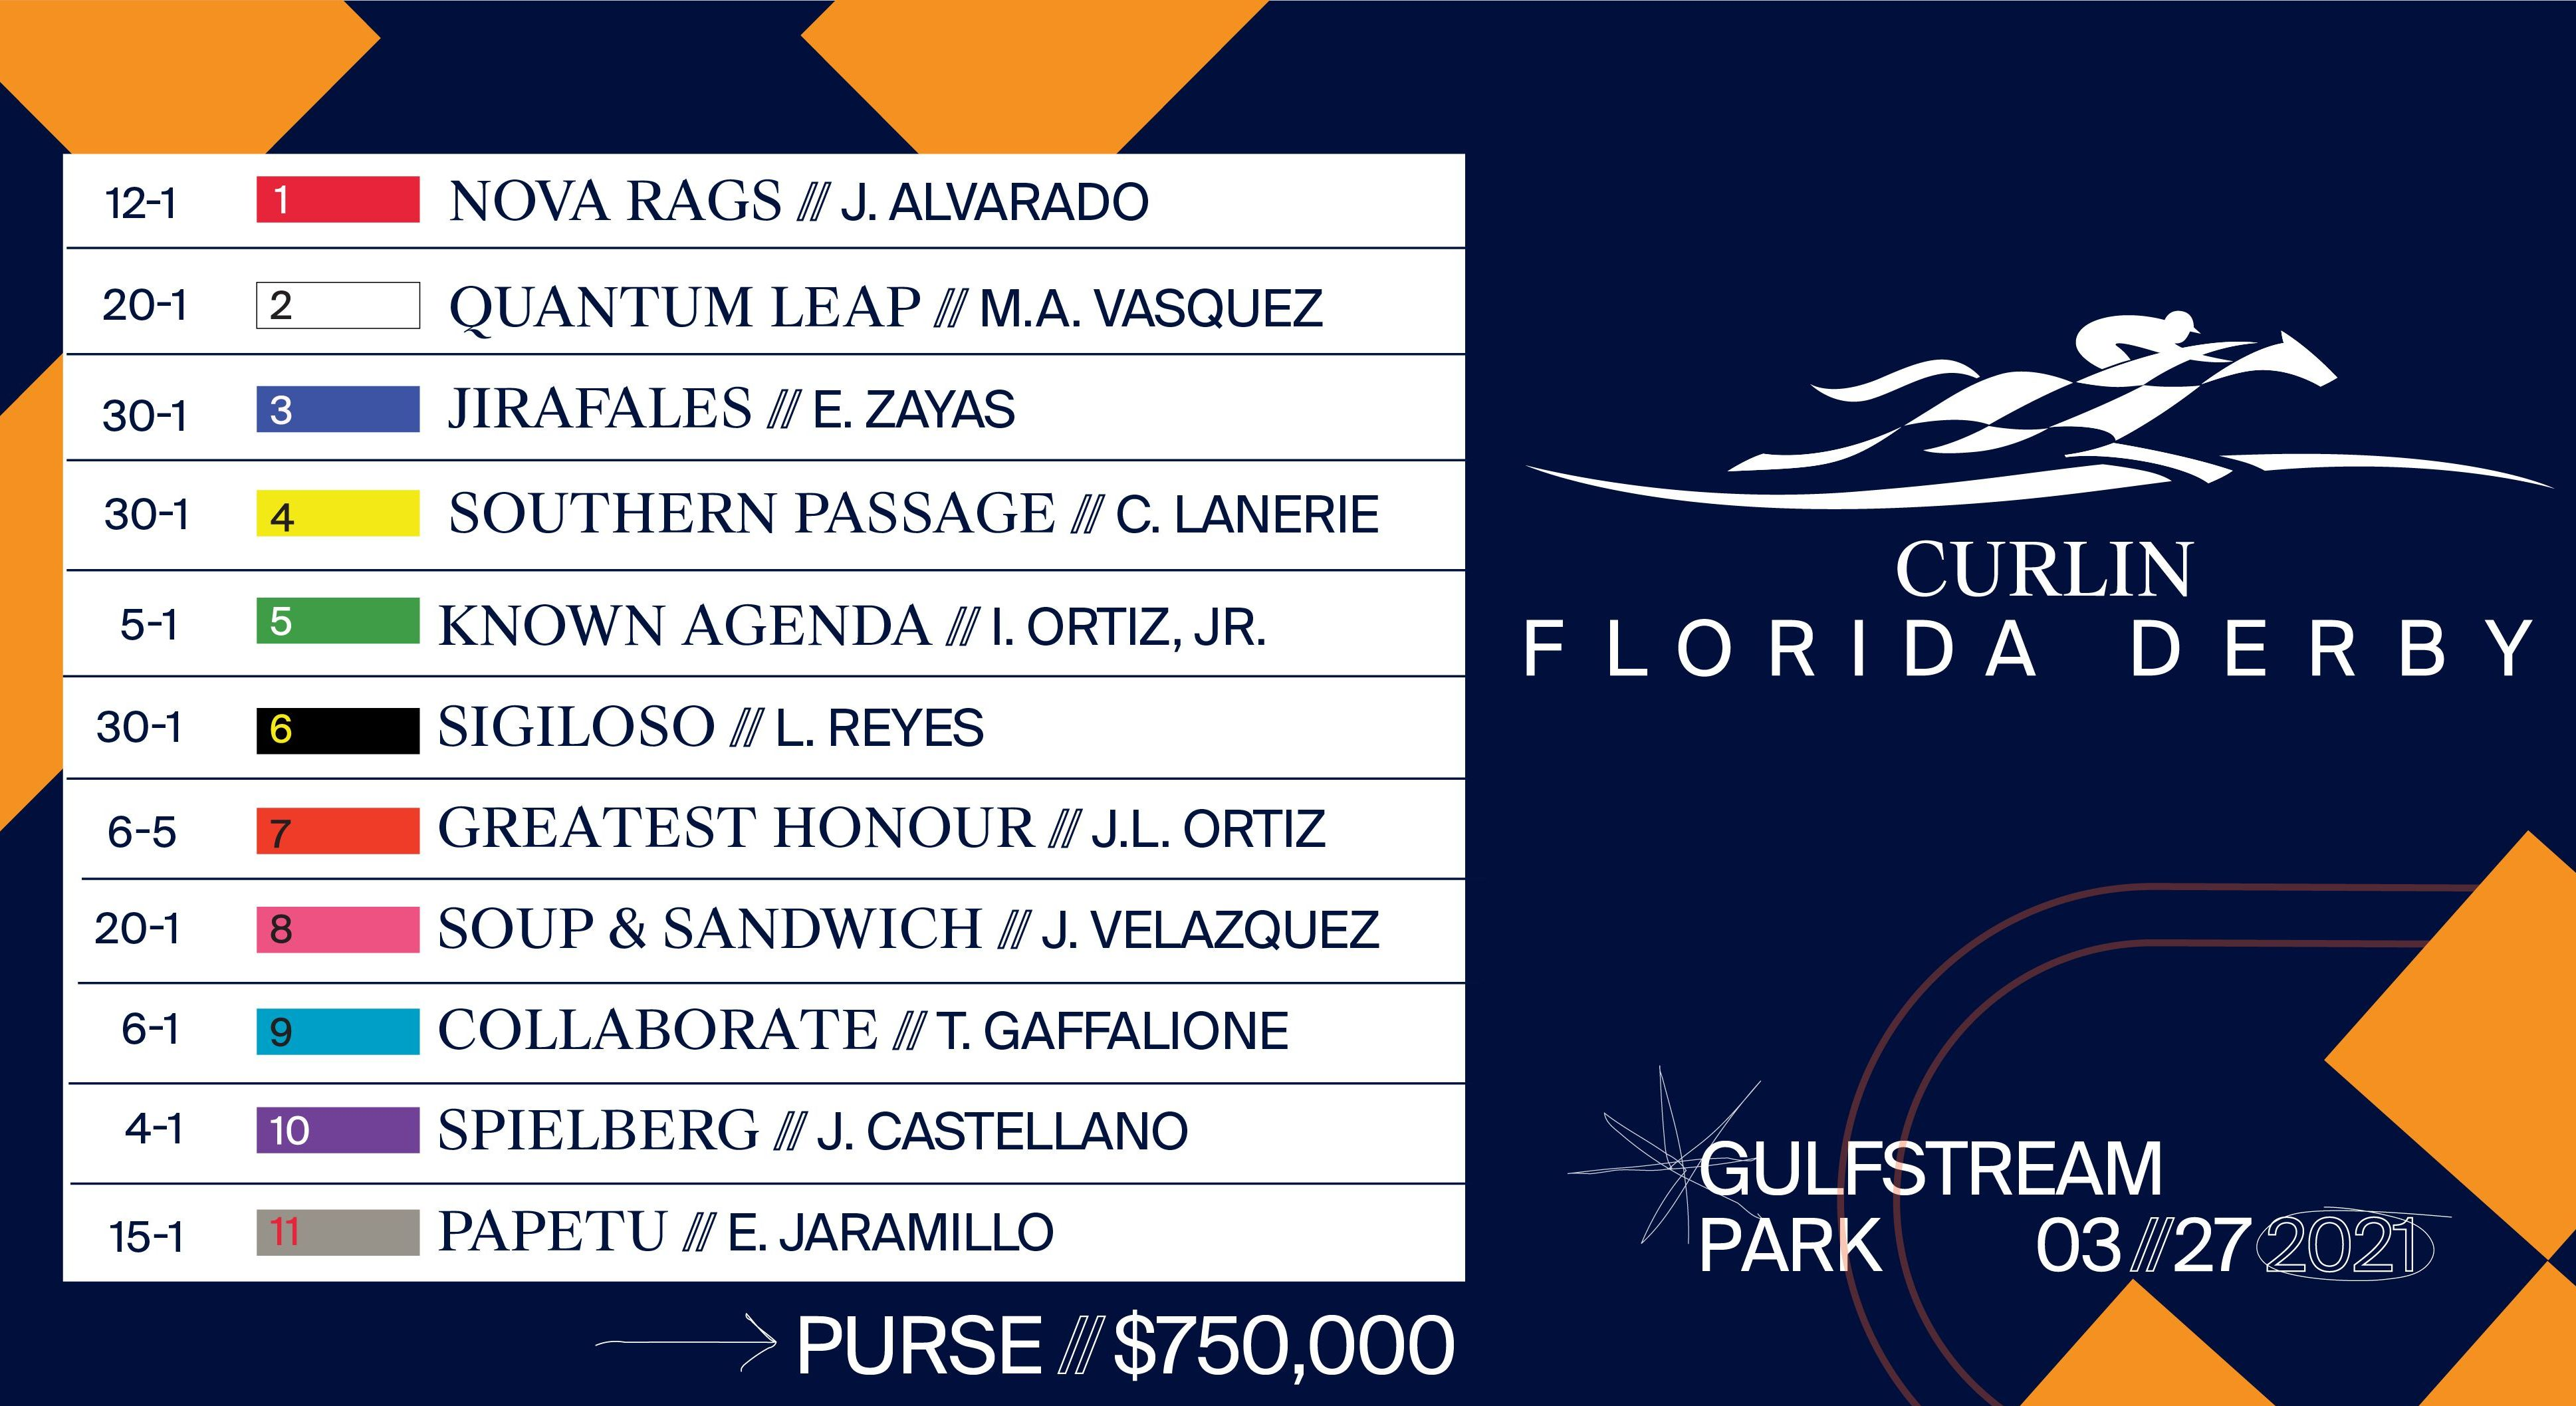 Curlin Florida Derby Contenders